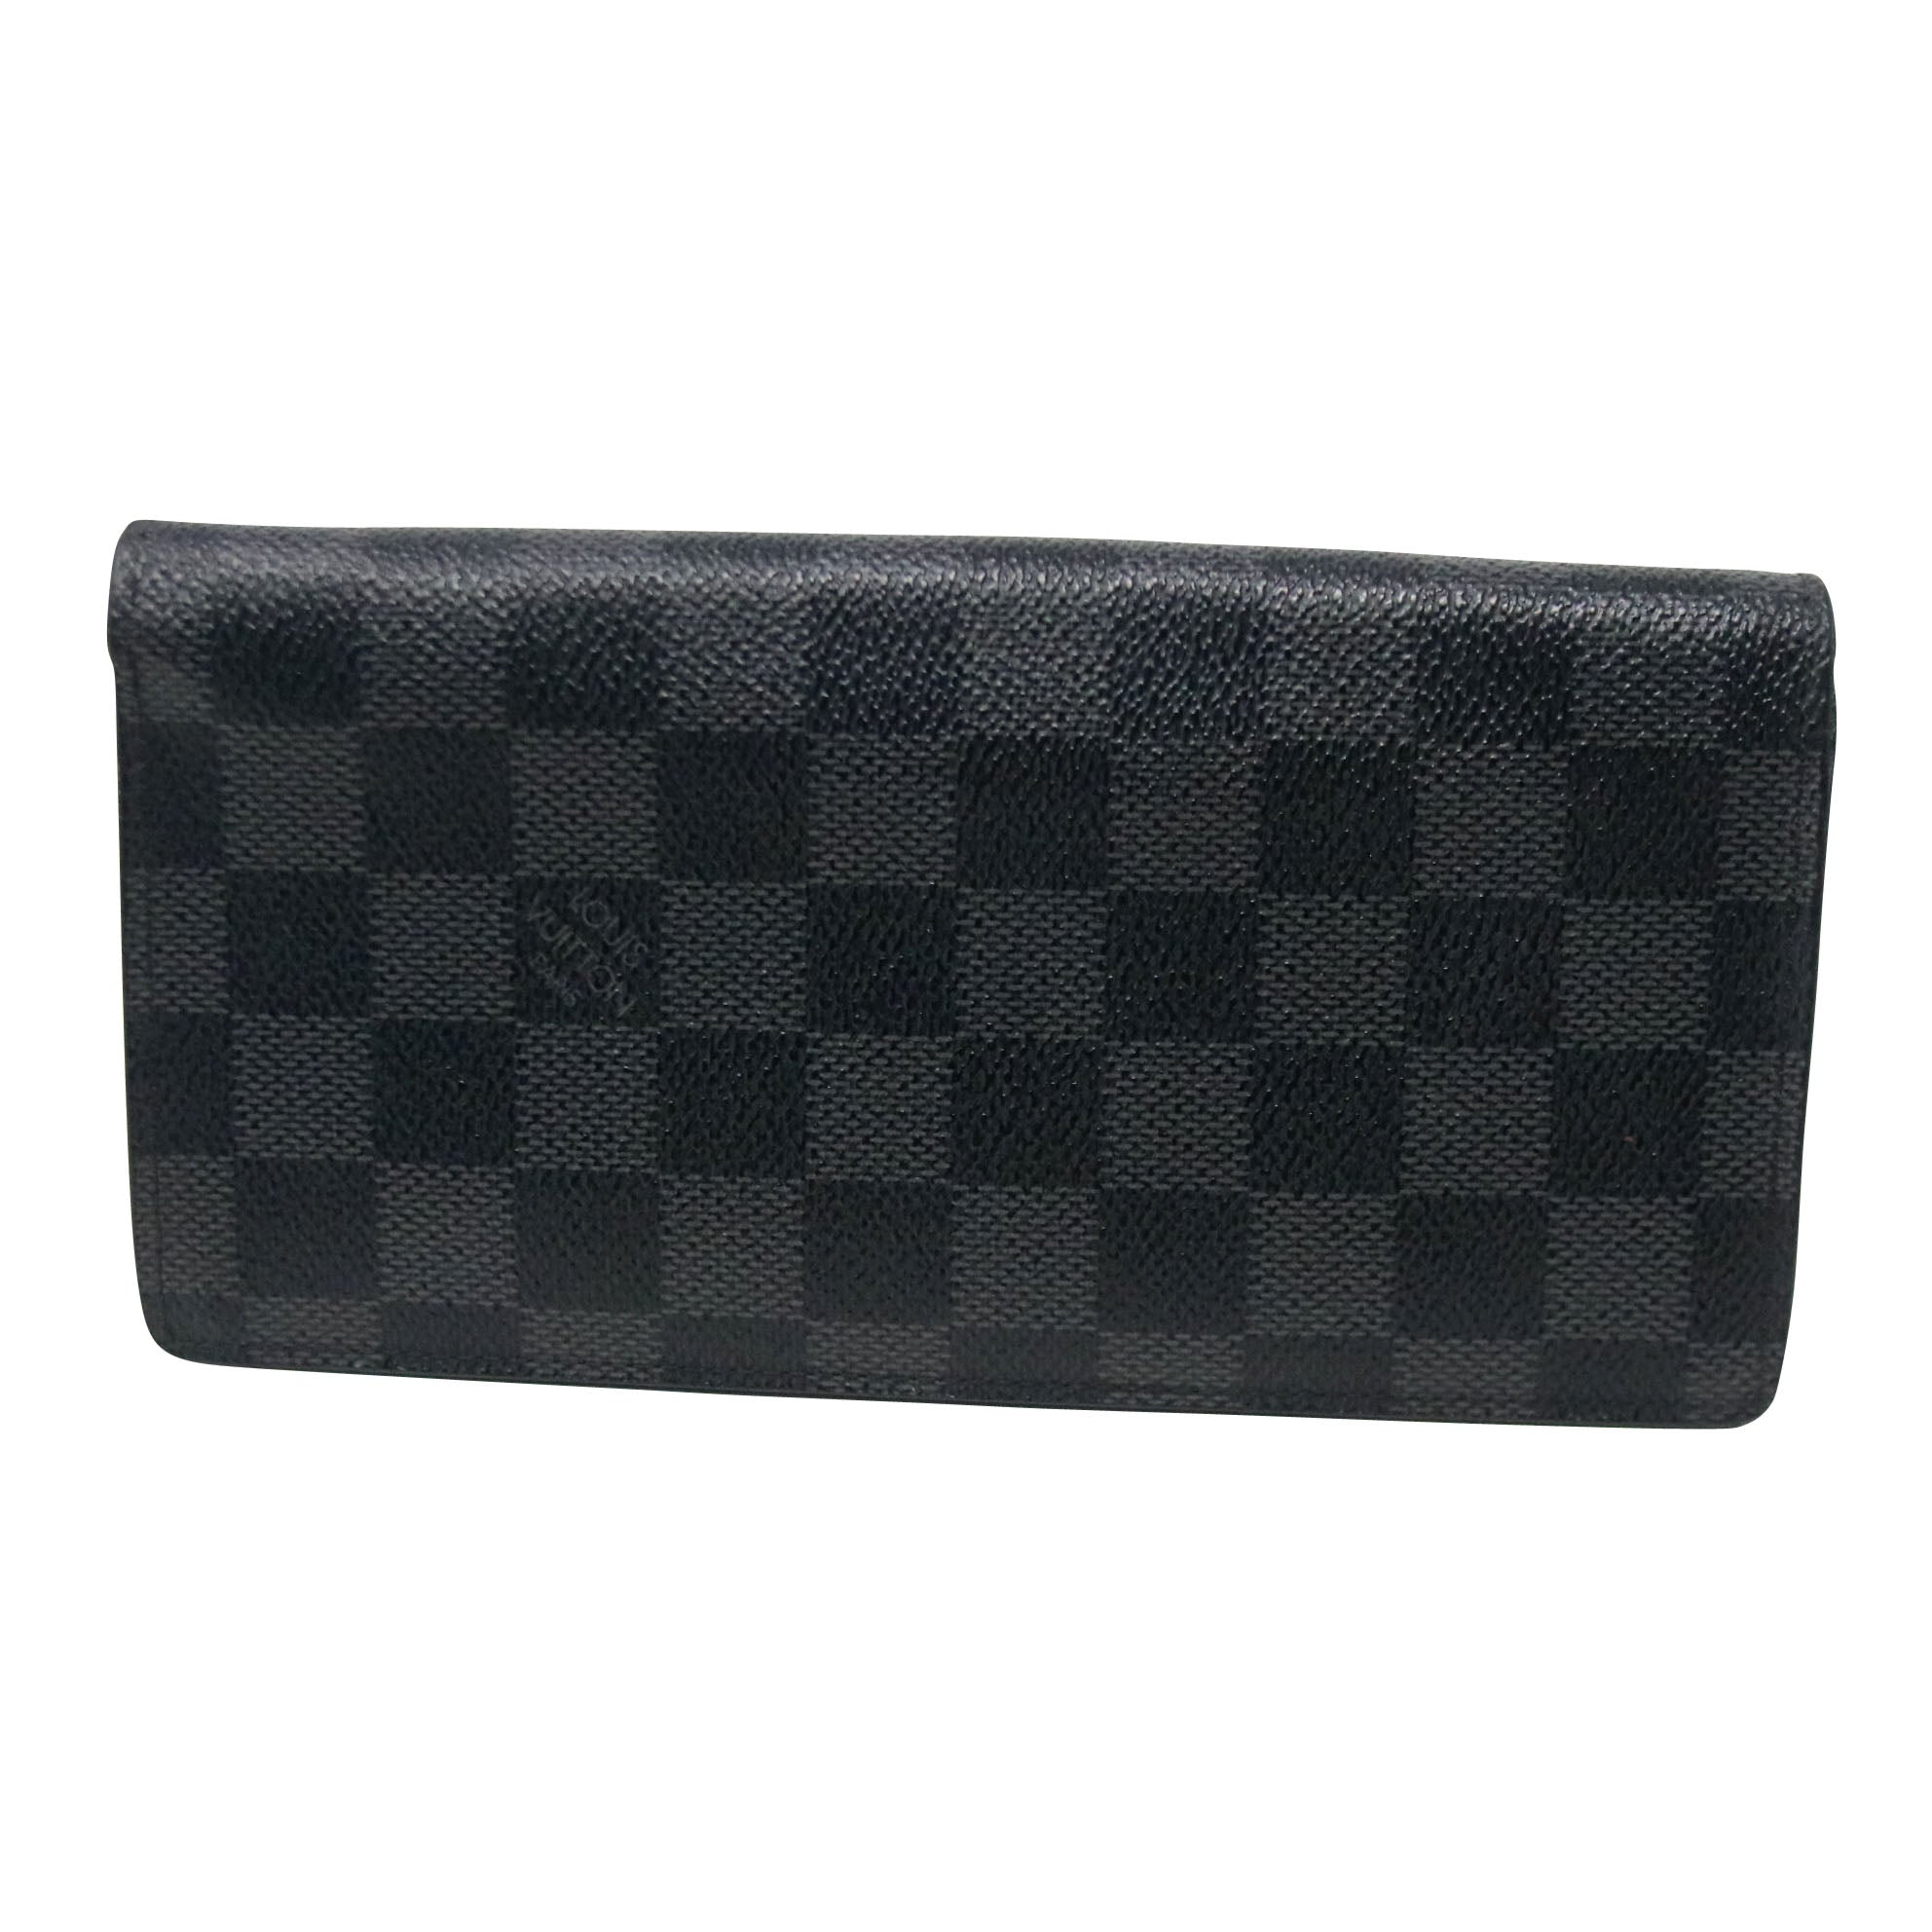 Louis Vuitton Gray Rare Brazza Damier Gm Graphite Canvas Bifold Wallet